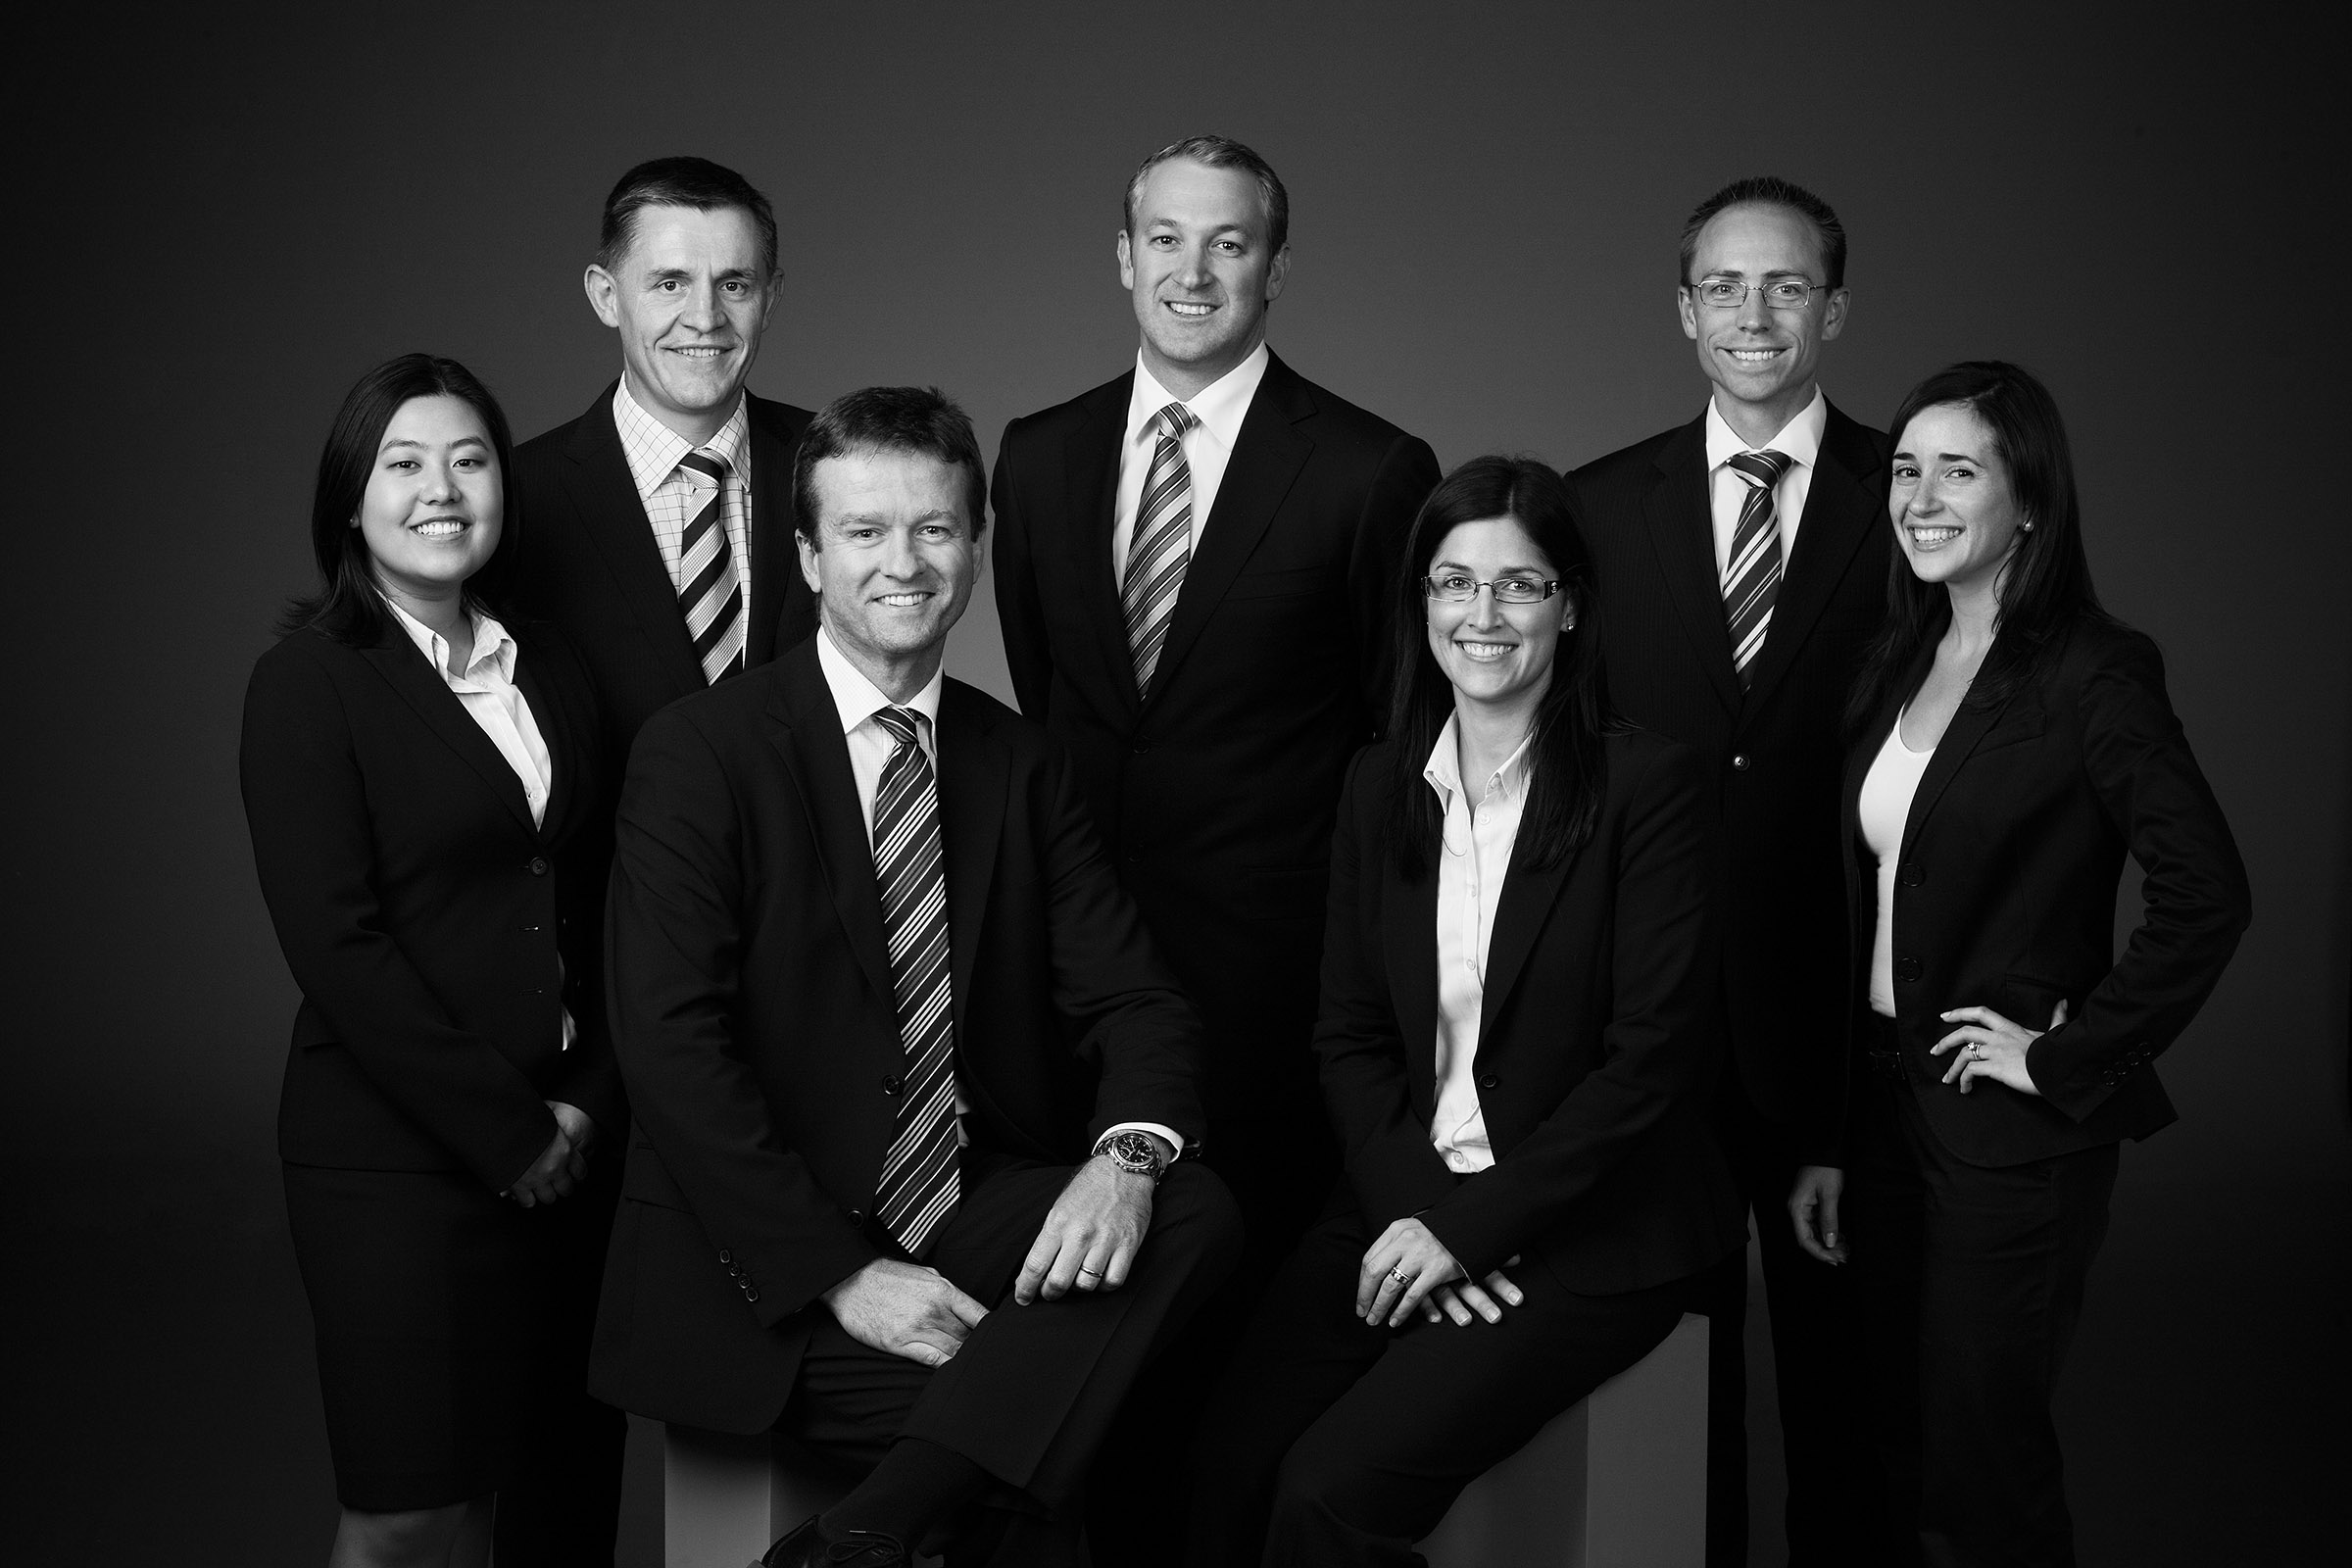 Corporate studio black and white group shot photography of 7 people standing and sitting